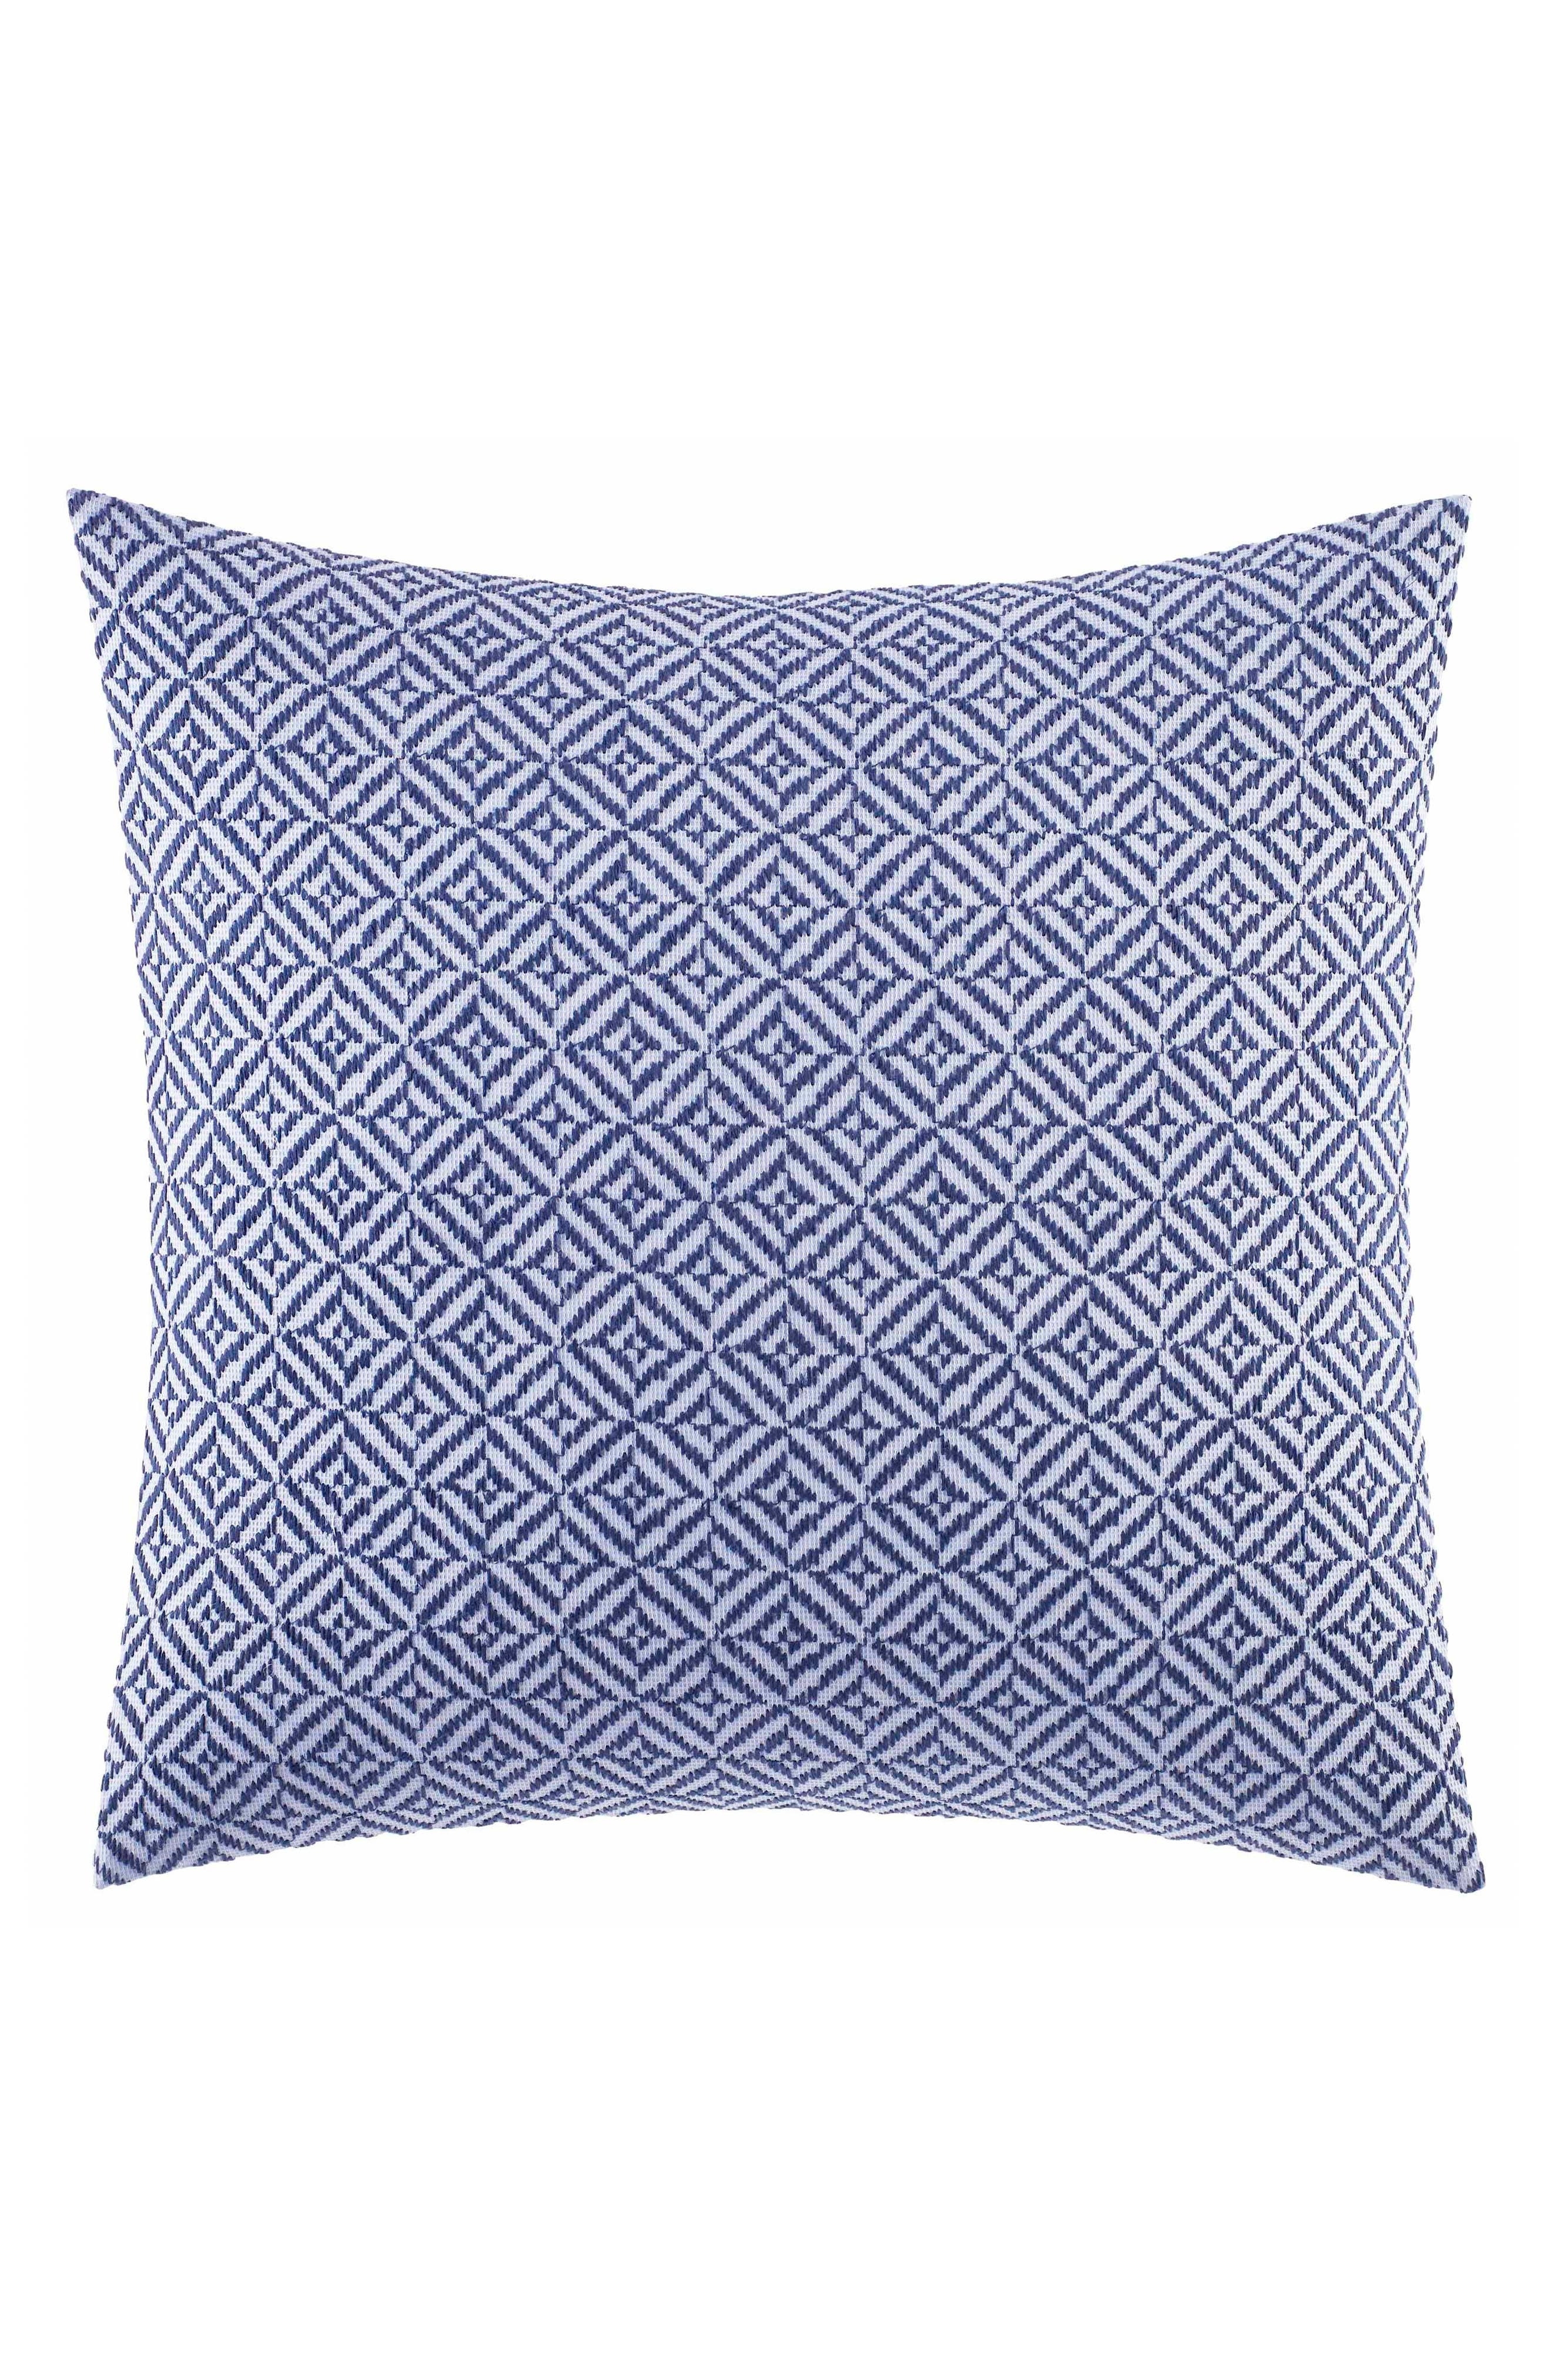 Alternate Image 1 Selected - Vera Wang Chevron Accent Pillow